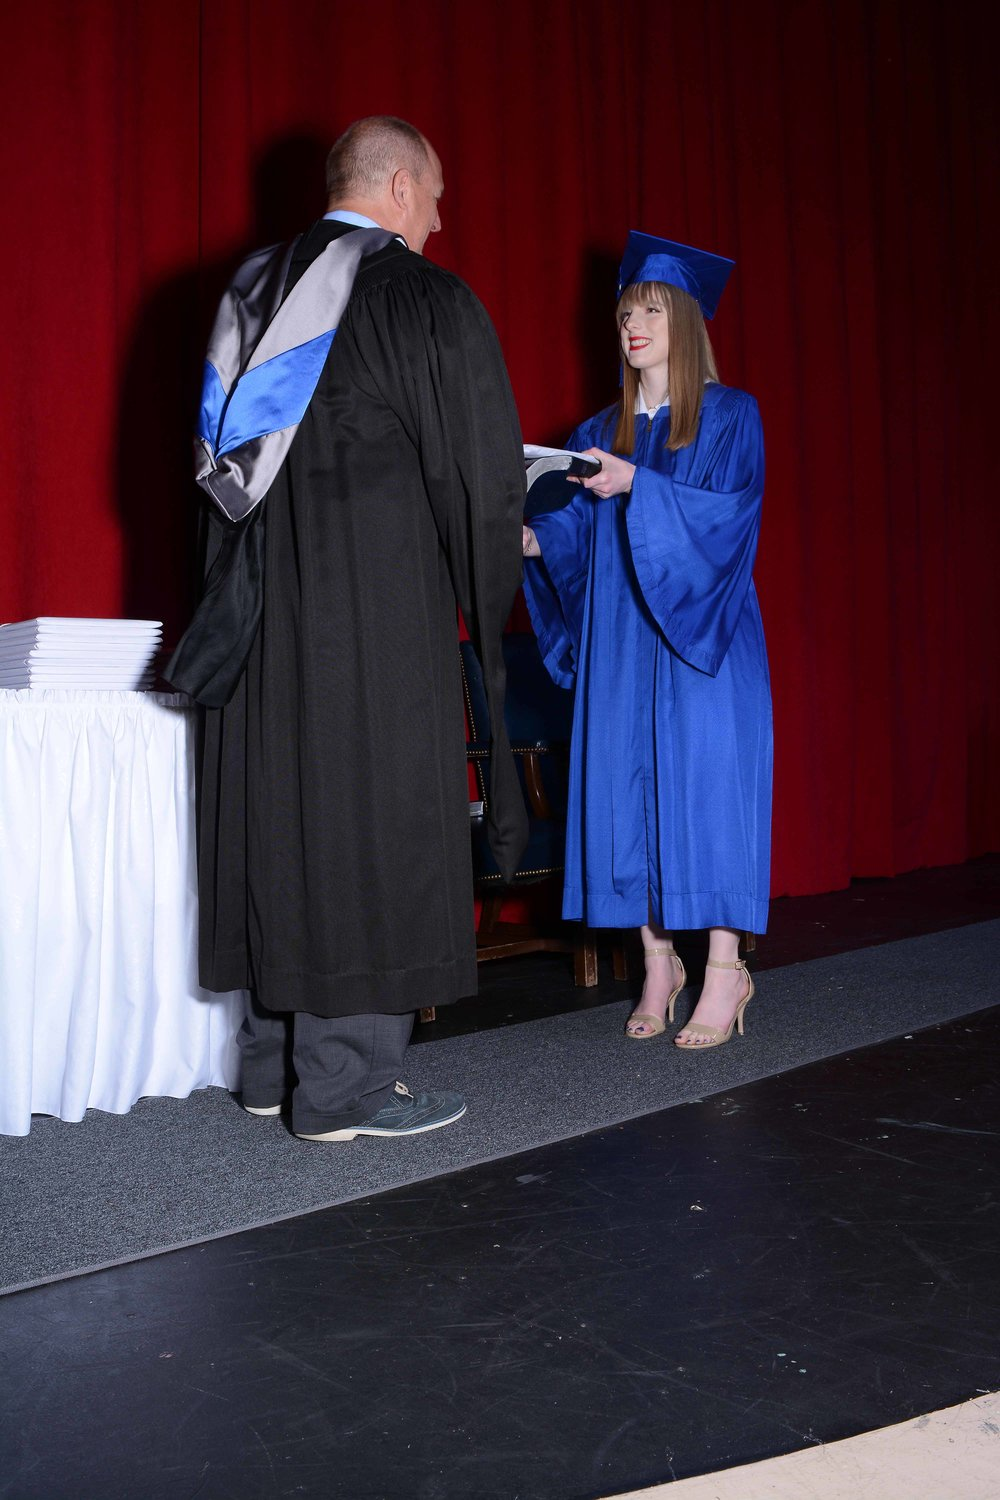 May14 Commencement54.jpg